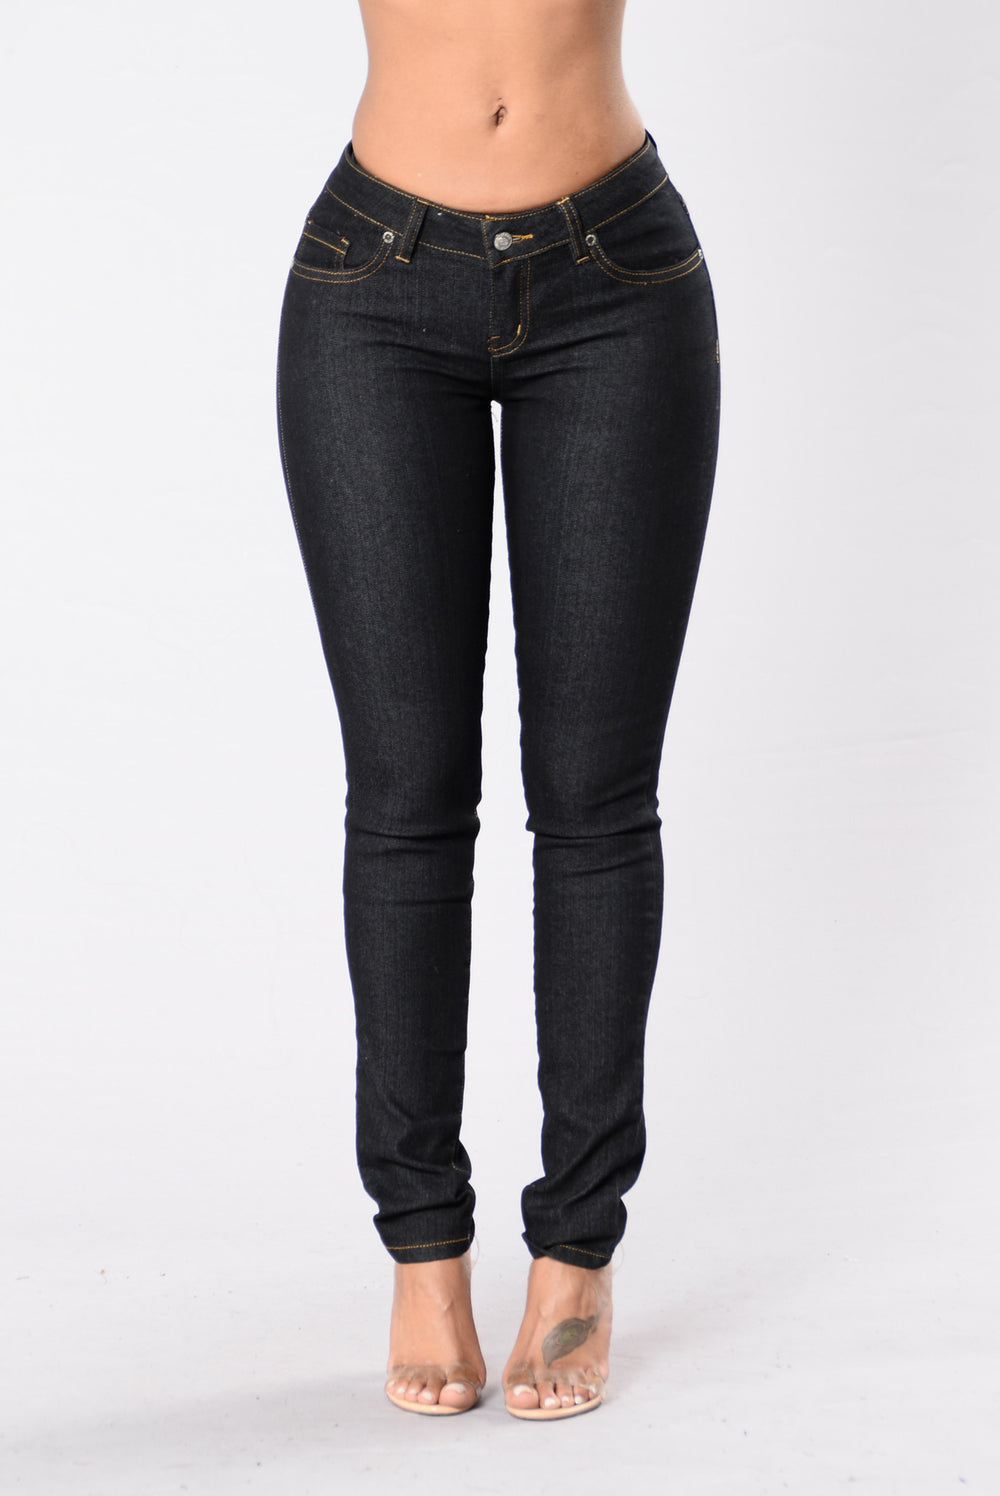 Up For The Challenge Jeans - Black